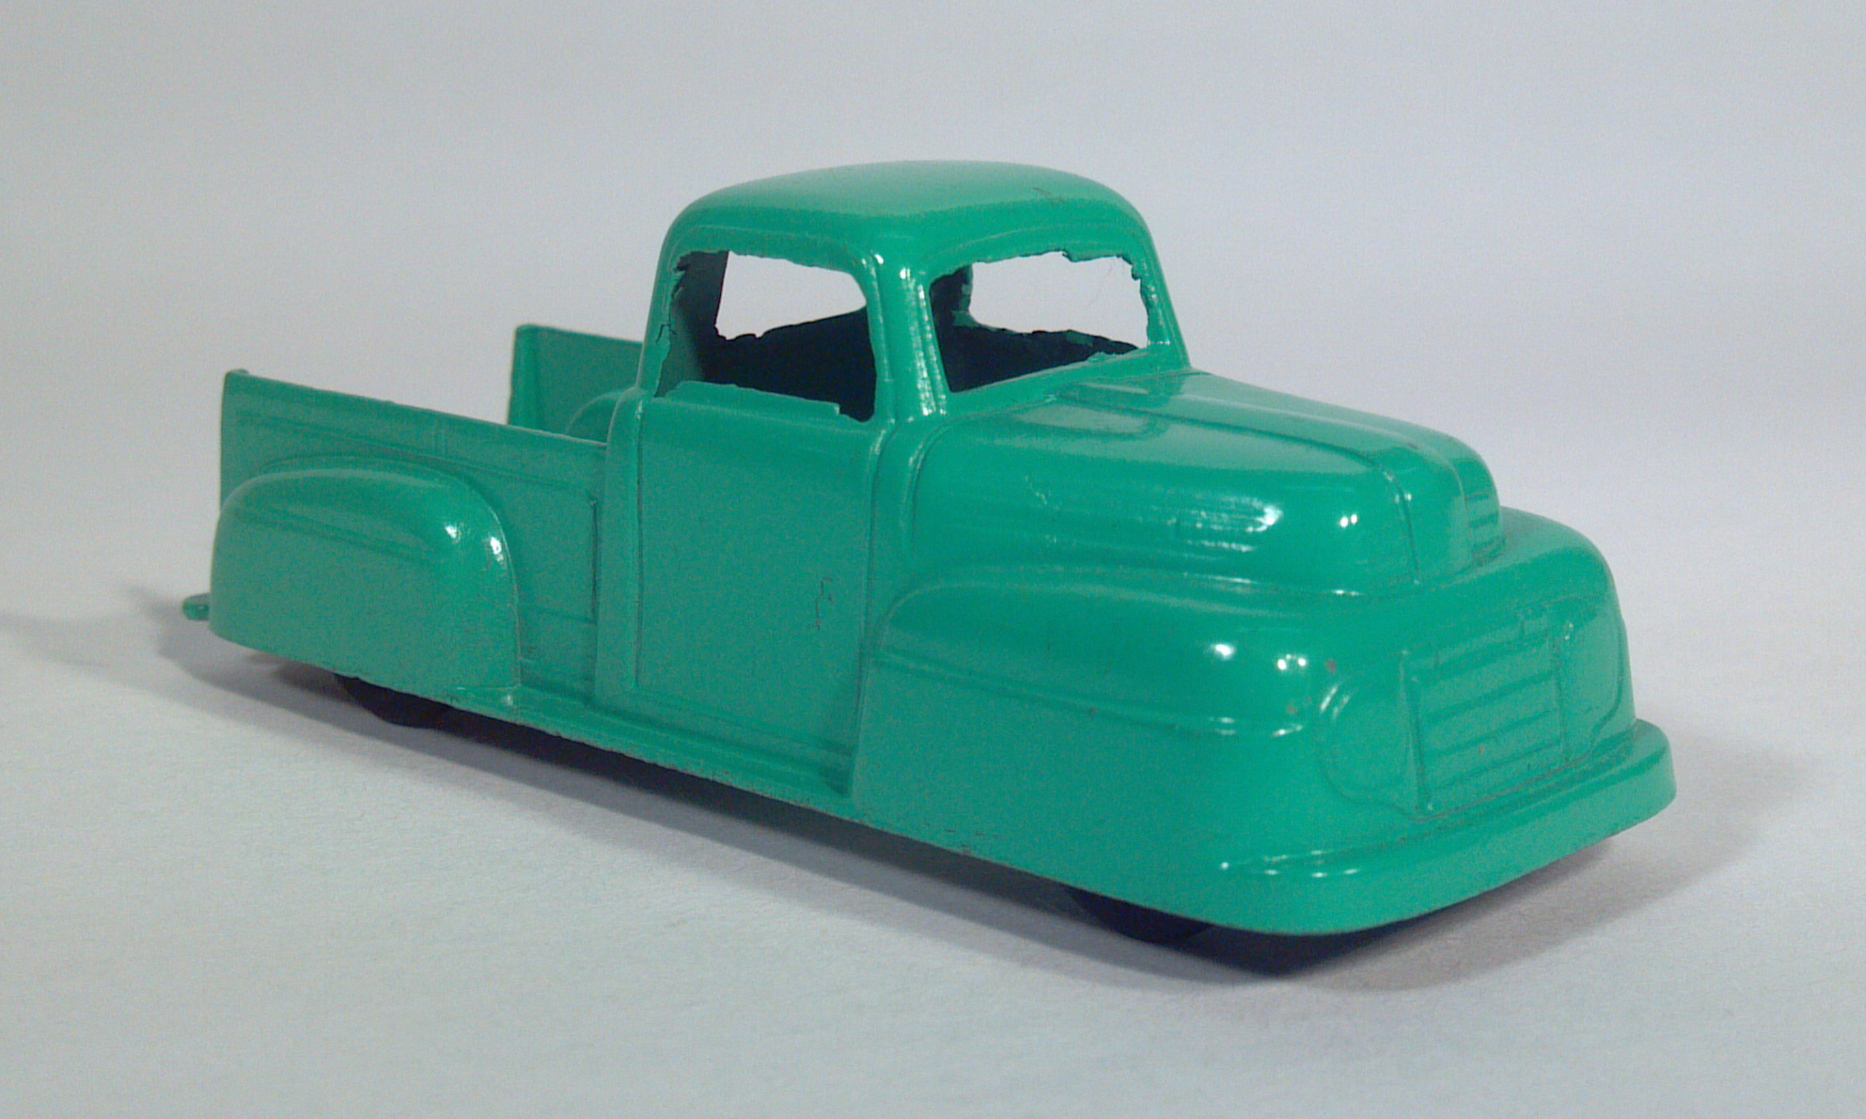 Post War Tootsietoy Diecast Toy Vehicles Scale Models Cars Trucks Ebay Ford Tractor 3600 Wiring Harness Notes This Model Is Available In Our Store F1 Pickup Truck